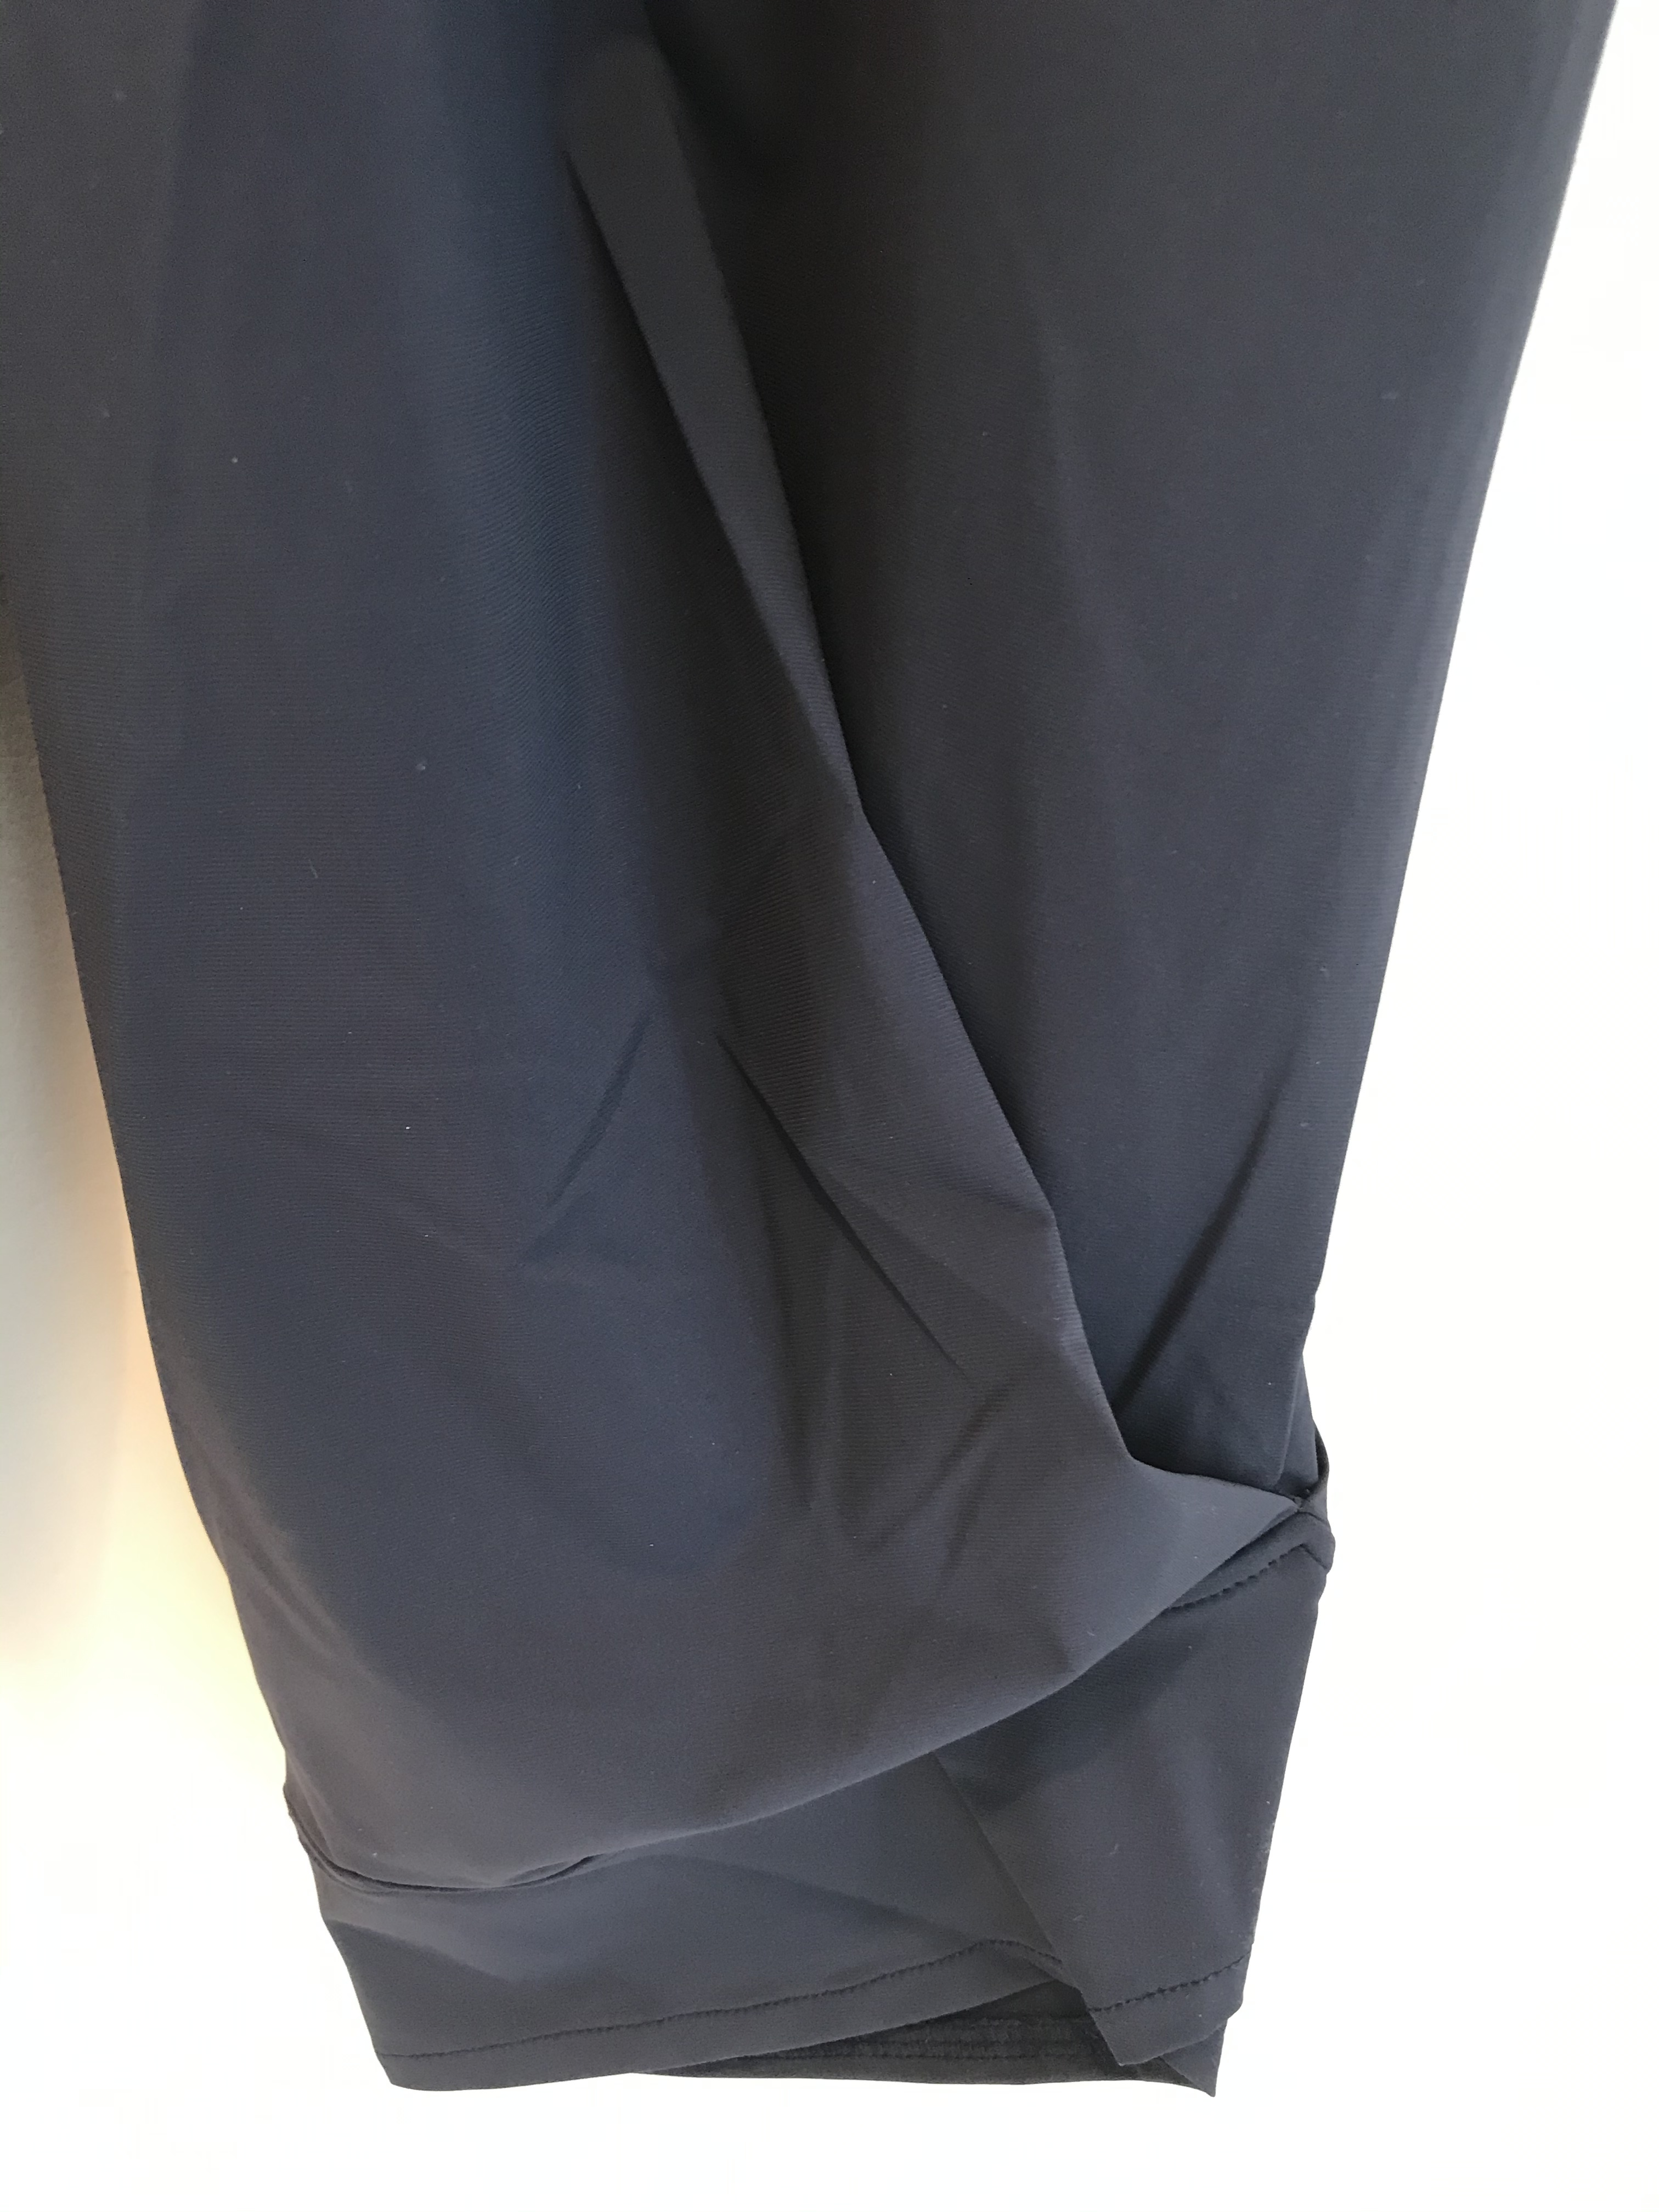 Maloka: Comfy Fit Tulip Cut Cropped Pants (More Colors!)